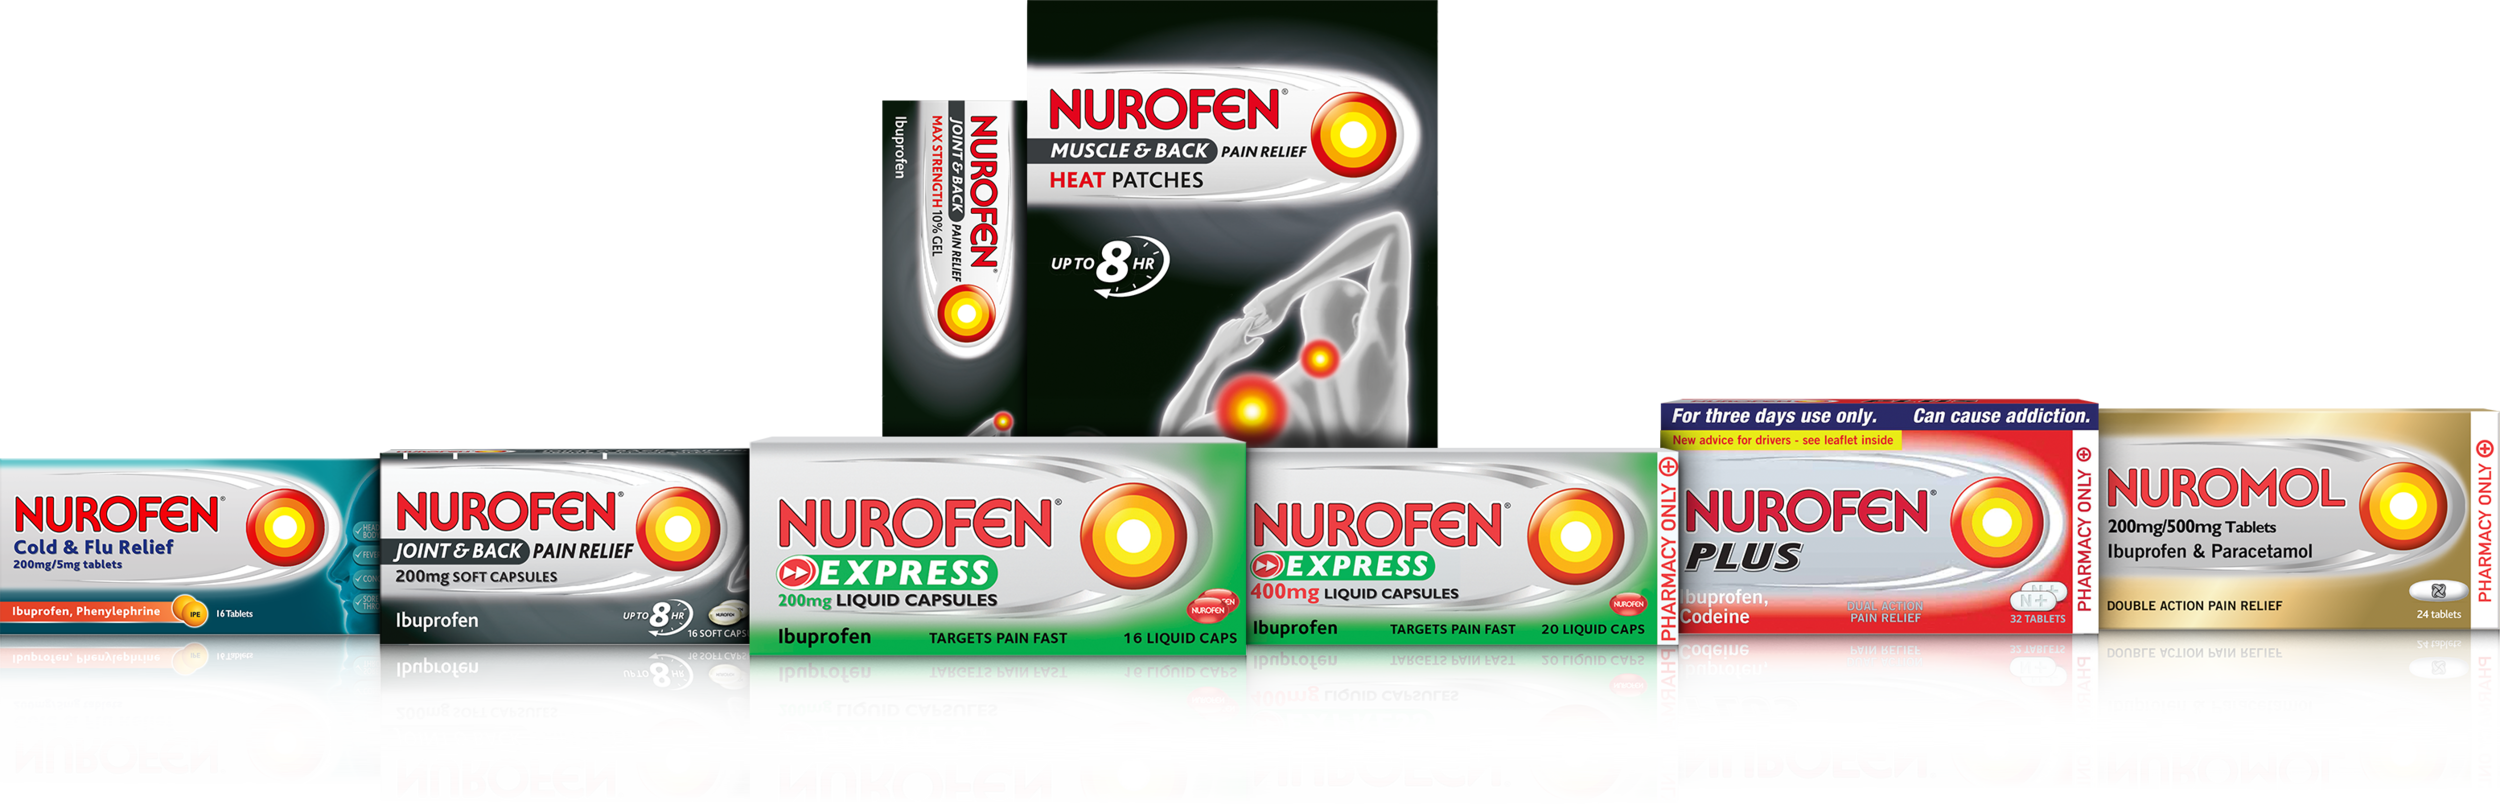 Products for many types of pain linked together by the powerful & trusted Nurofen branding.